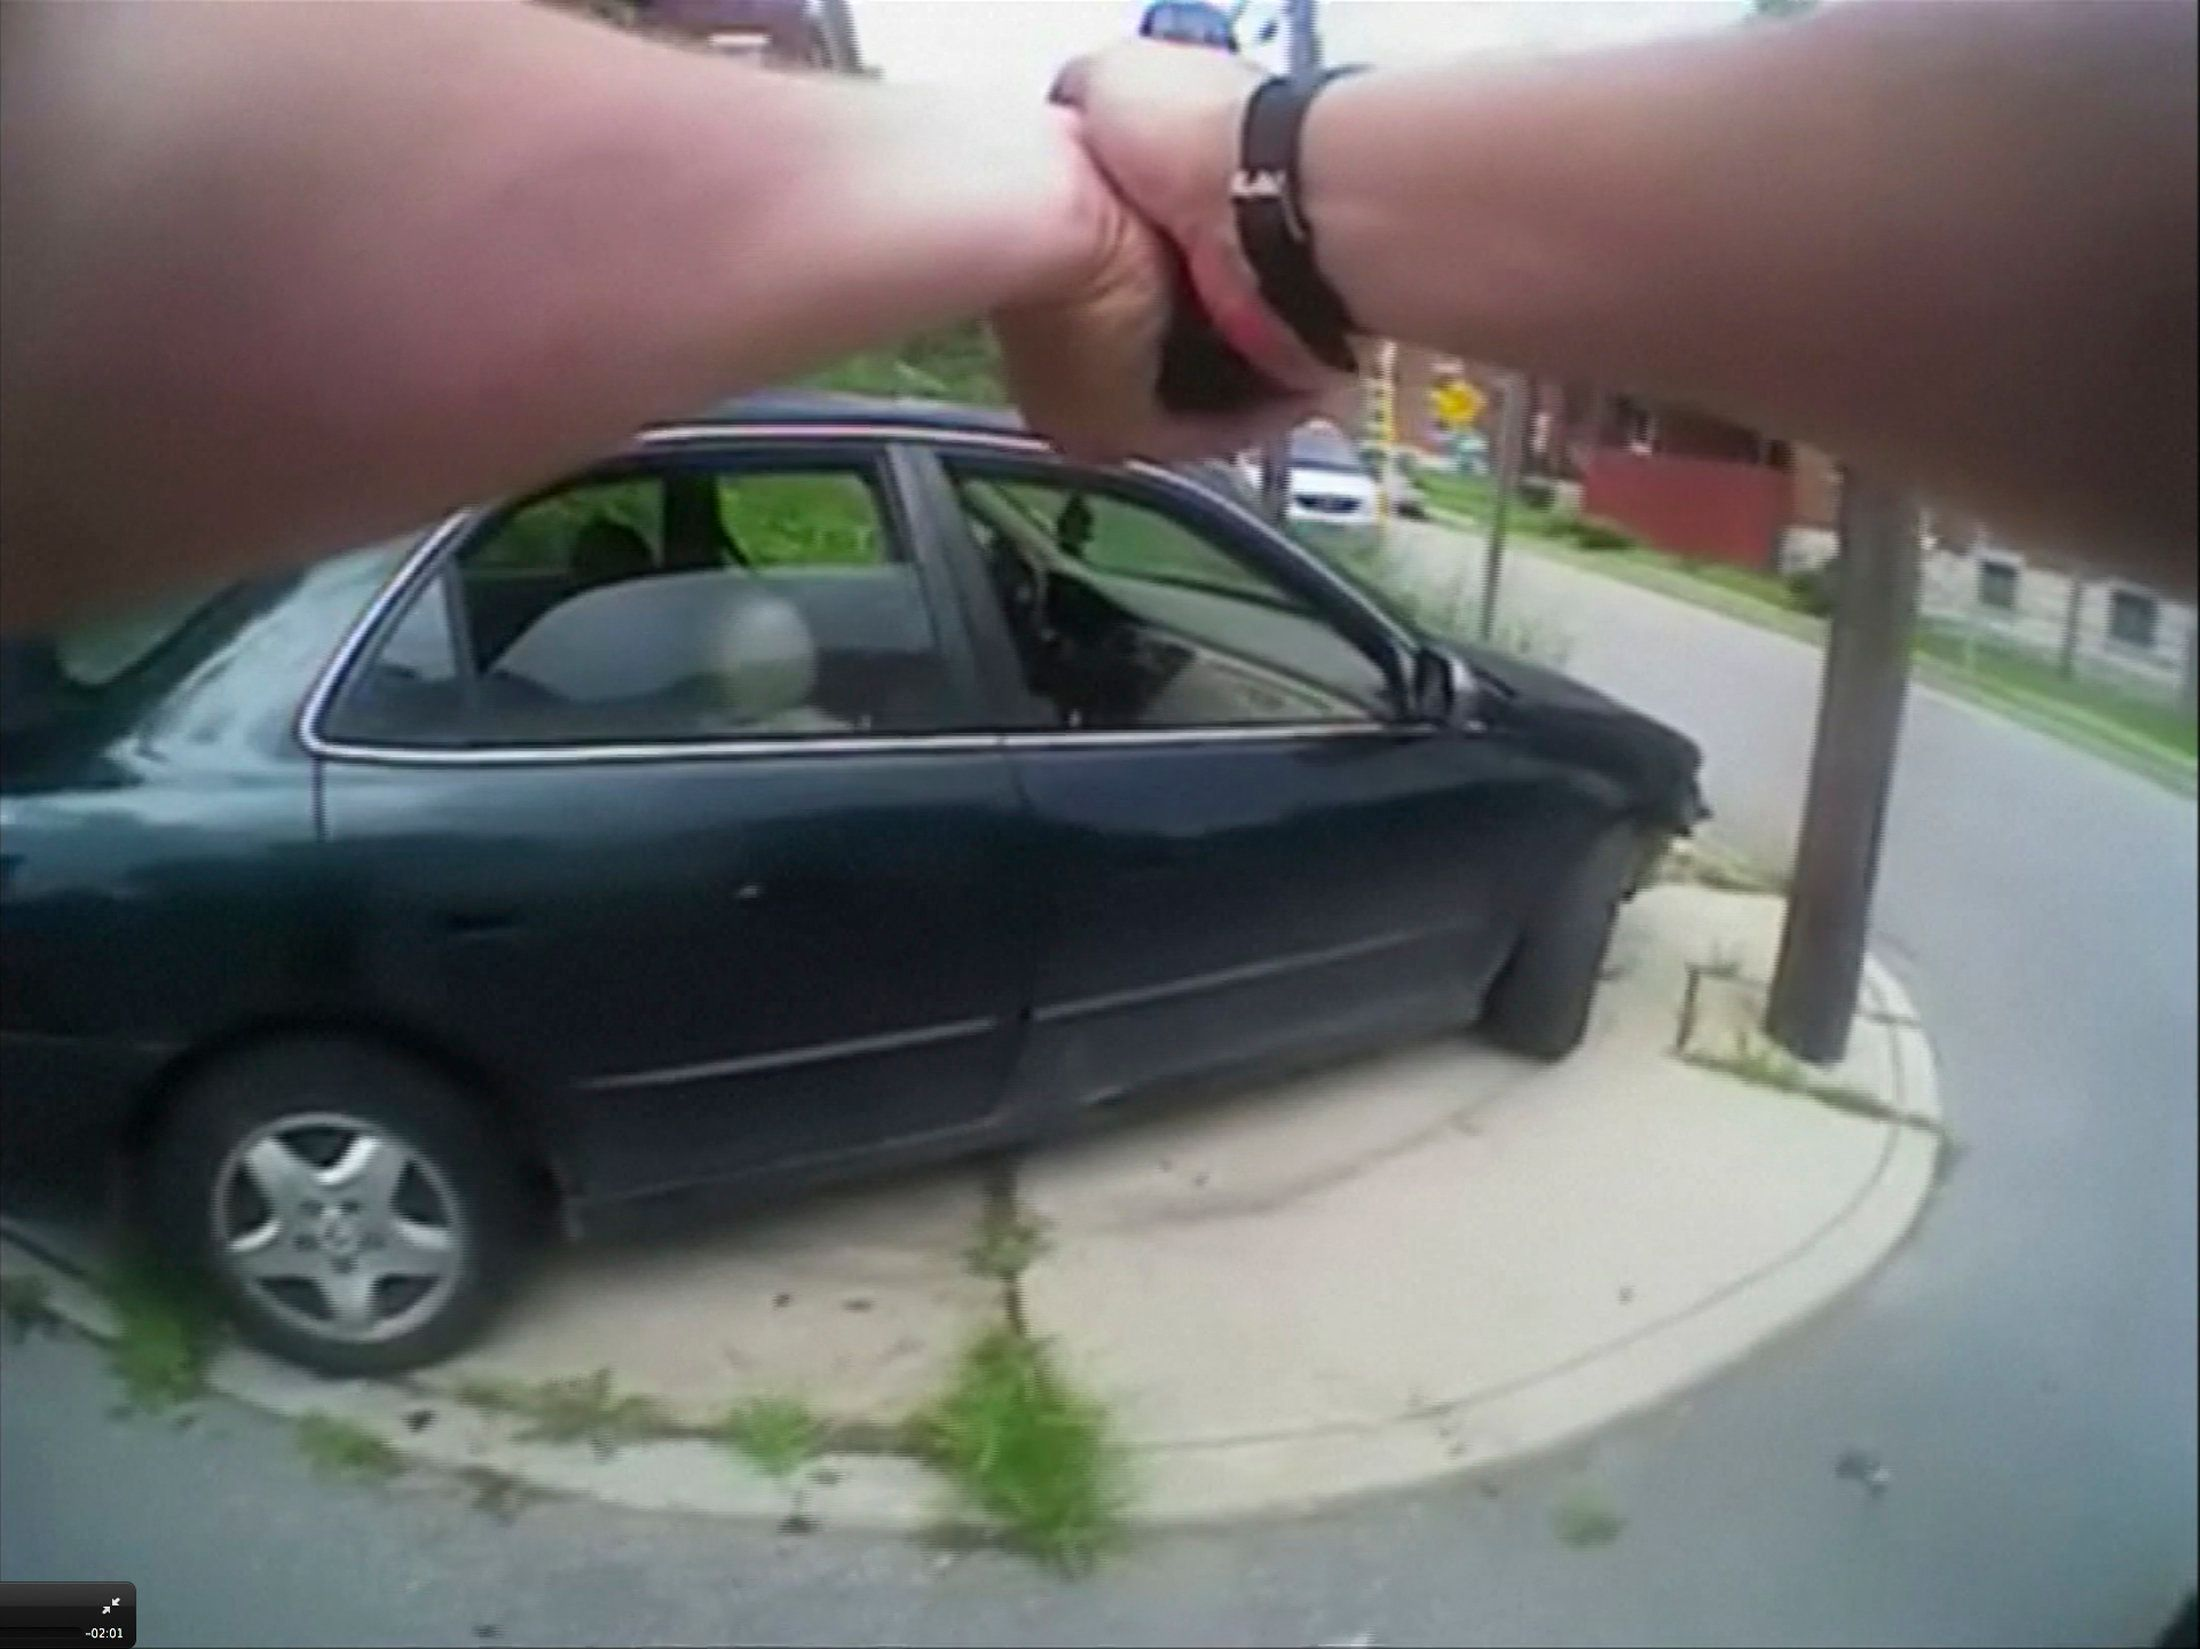 University of Cincinnati police officer Ray Tensing's body camera shows his handgun drawn at a car that came to a stop after driver Samuel Dubose was pulled over and shot during a traffic stop in Cincinnati, Ohio July 19, 2015, in a still image from video released by the Hamilton County Prosecutor's Office on July 29, 2015. A University of Cincinnati police officer who fatally shot an unarmed black man has been charged with murder after a grand jury investigation, the Hamilton County prosecutor said on Wednesday.  REUTERS/Hamilton County Prosecutor's Office/Handout via Reuters FOR EDITORIAL USE ONLY. NOT FOR SALE FOR MARKETING OR ADVERTISING CAMPAIGNS. THIS IMAGE HAS BEEN SUPPLIED BY A THIRD PARTY. IT IS DISTRIBUTED, EXACTLY AS RECEIVED BY REUTERS, AS A SERVICE TO CLIENTS